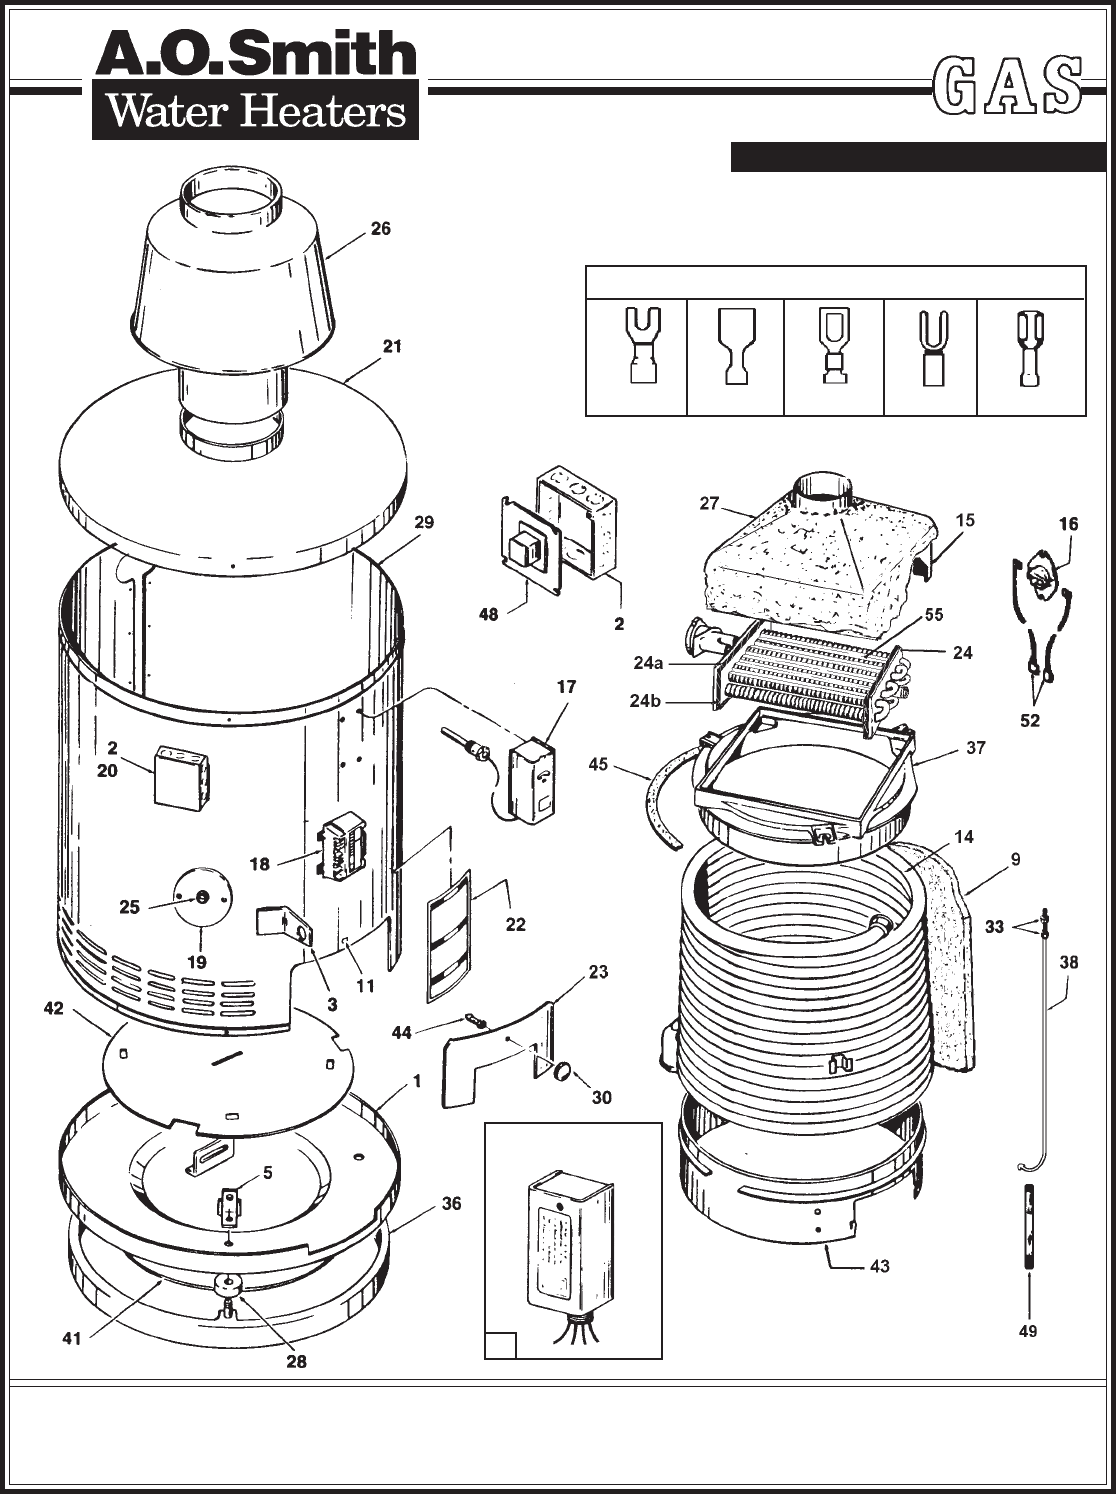 A.O. Smith Water Heater 105 Series User Guide